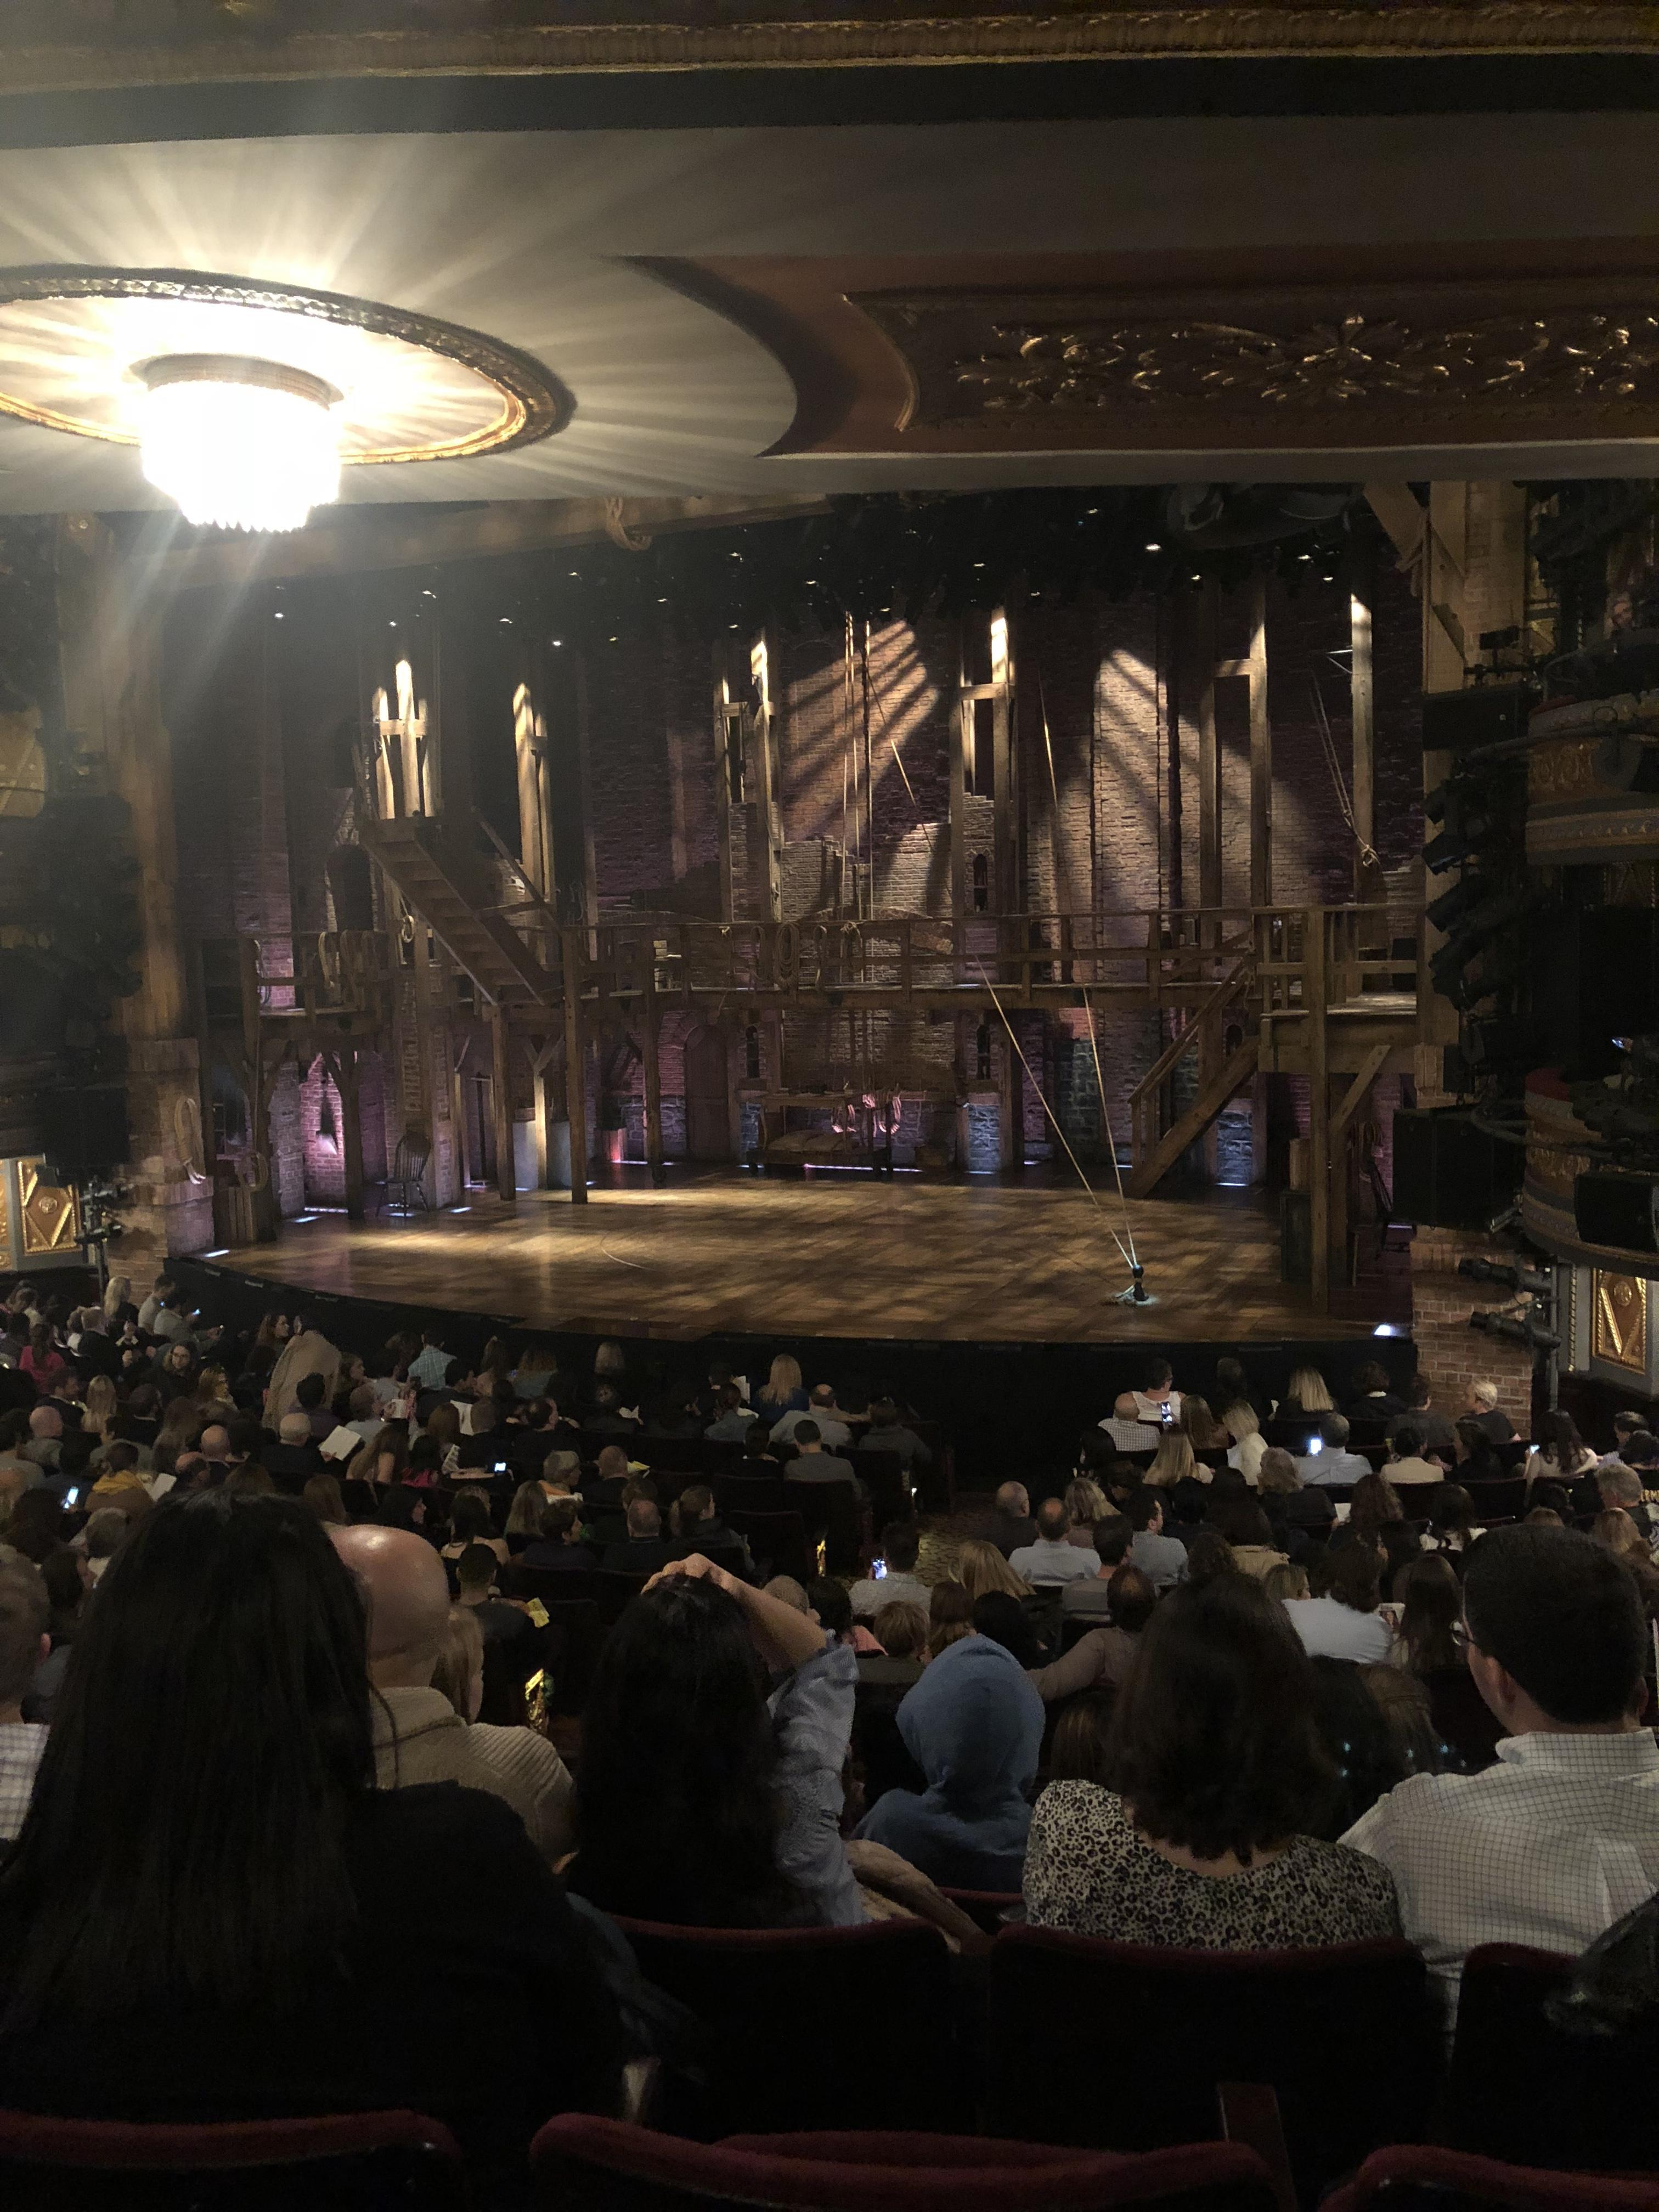 Richard Rodgers Theatre Section Orchestra L Row R Seat 16